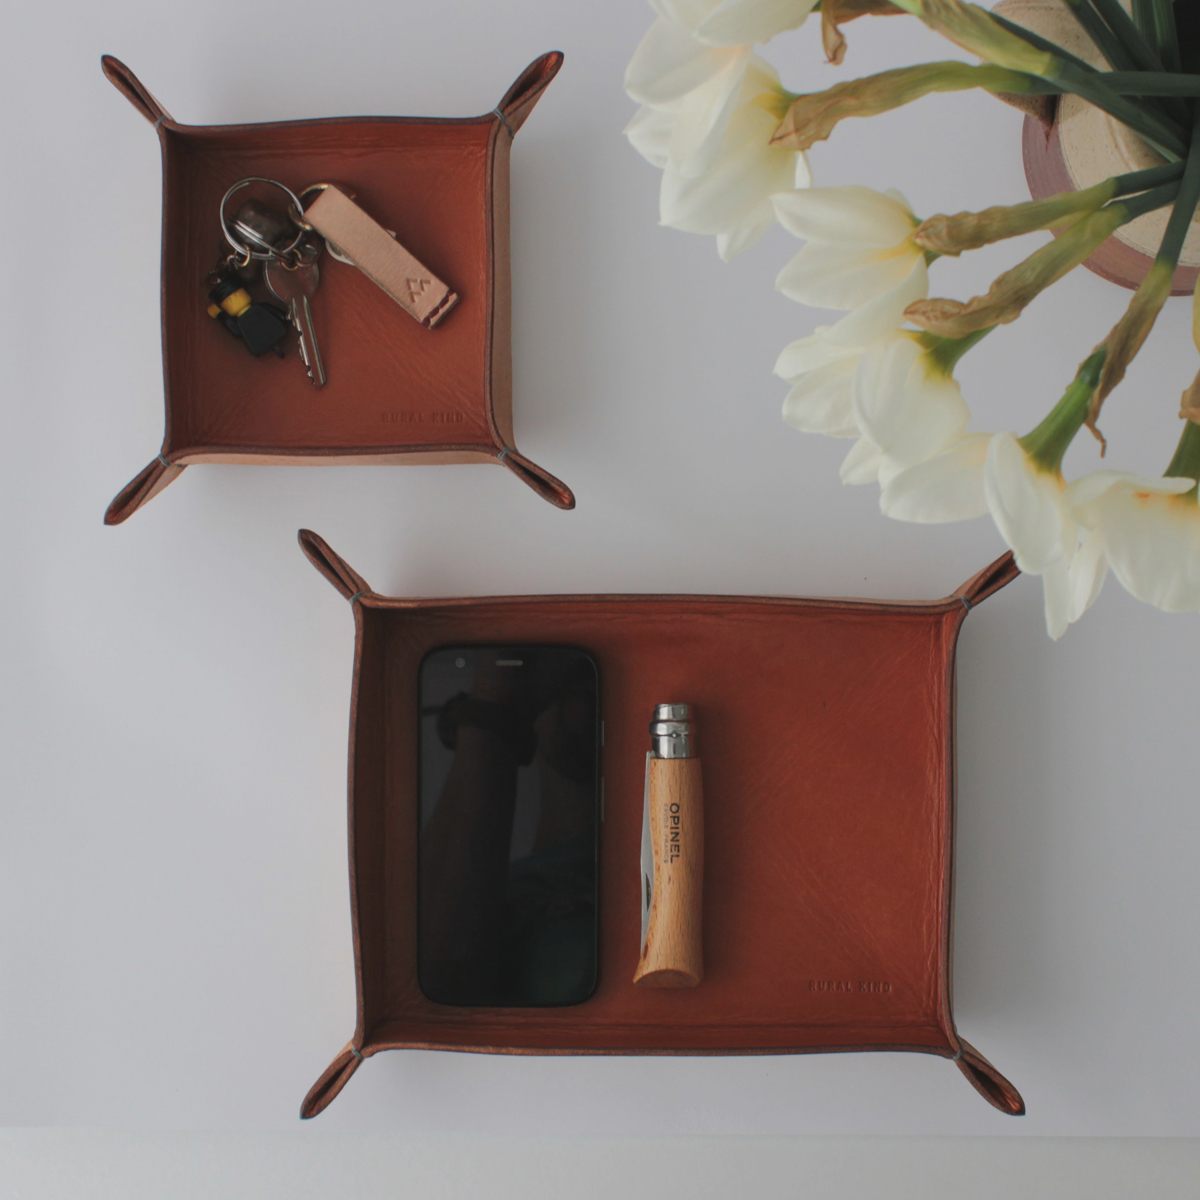 So here we are - DAY 2 #makeathingaday ..... made! Two leather organising trays moulded, folded and hand stitched from a flat piece of oak bark tanned leather. Perfect for keys, coins, phone (or another home for your opinel)